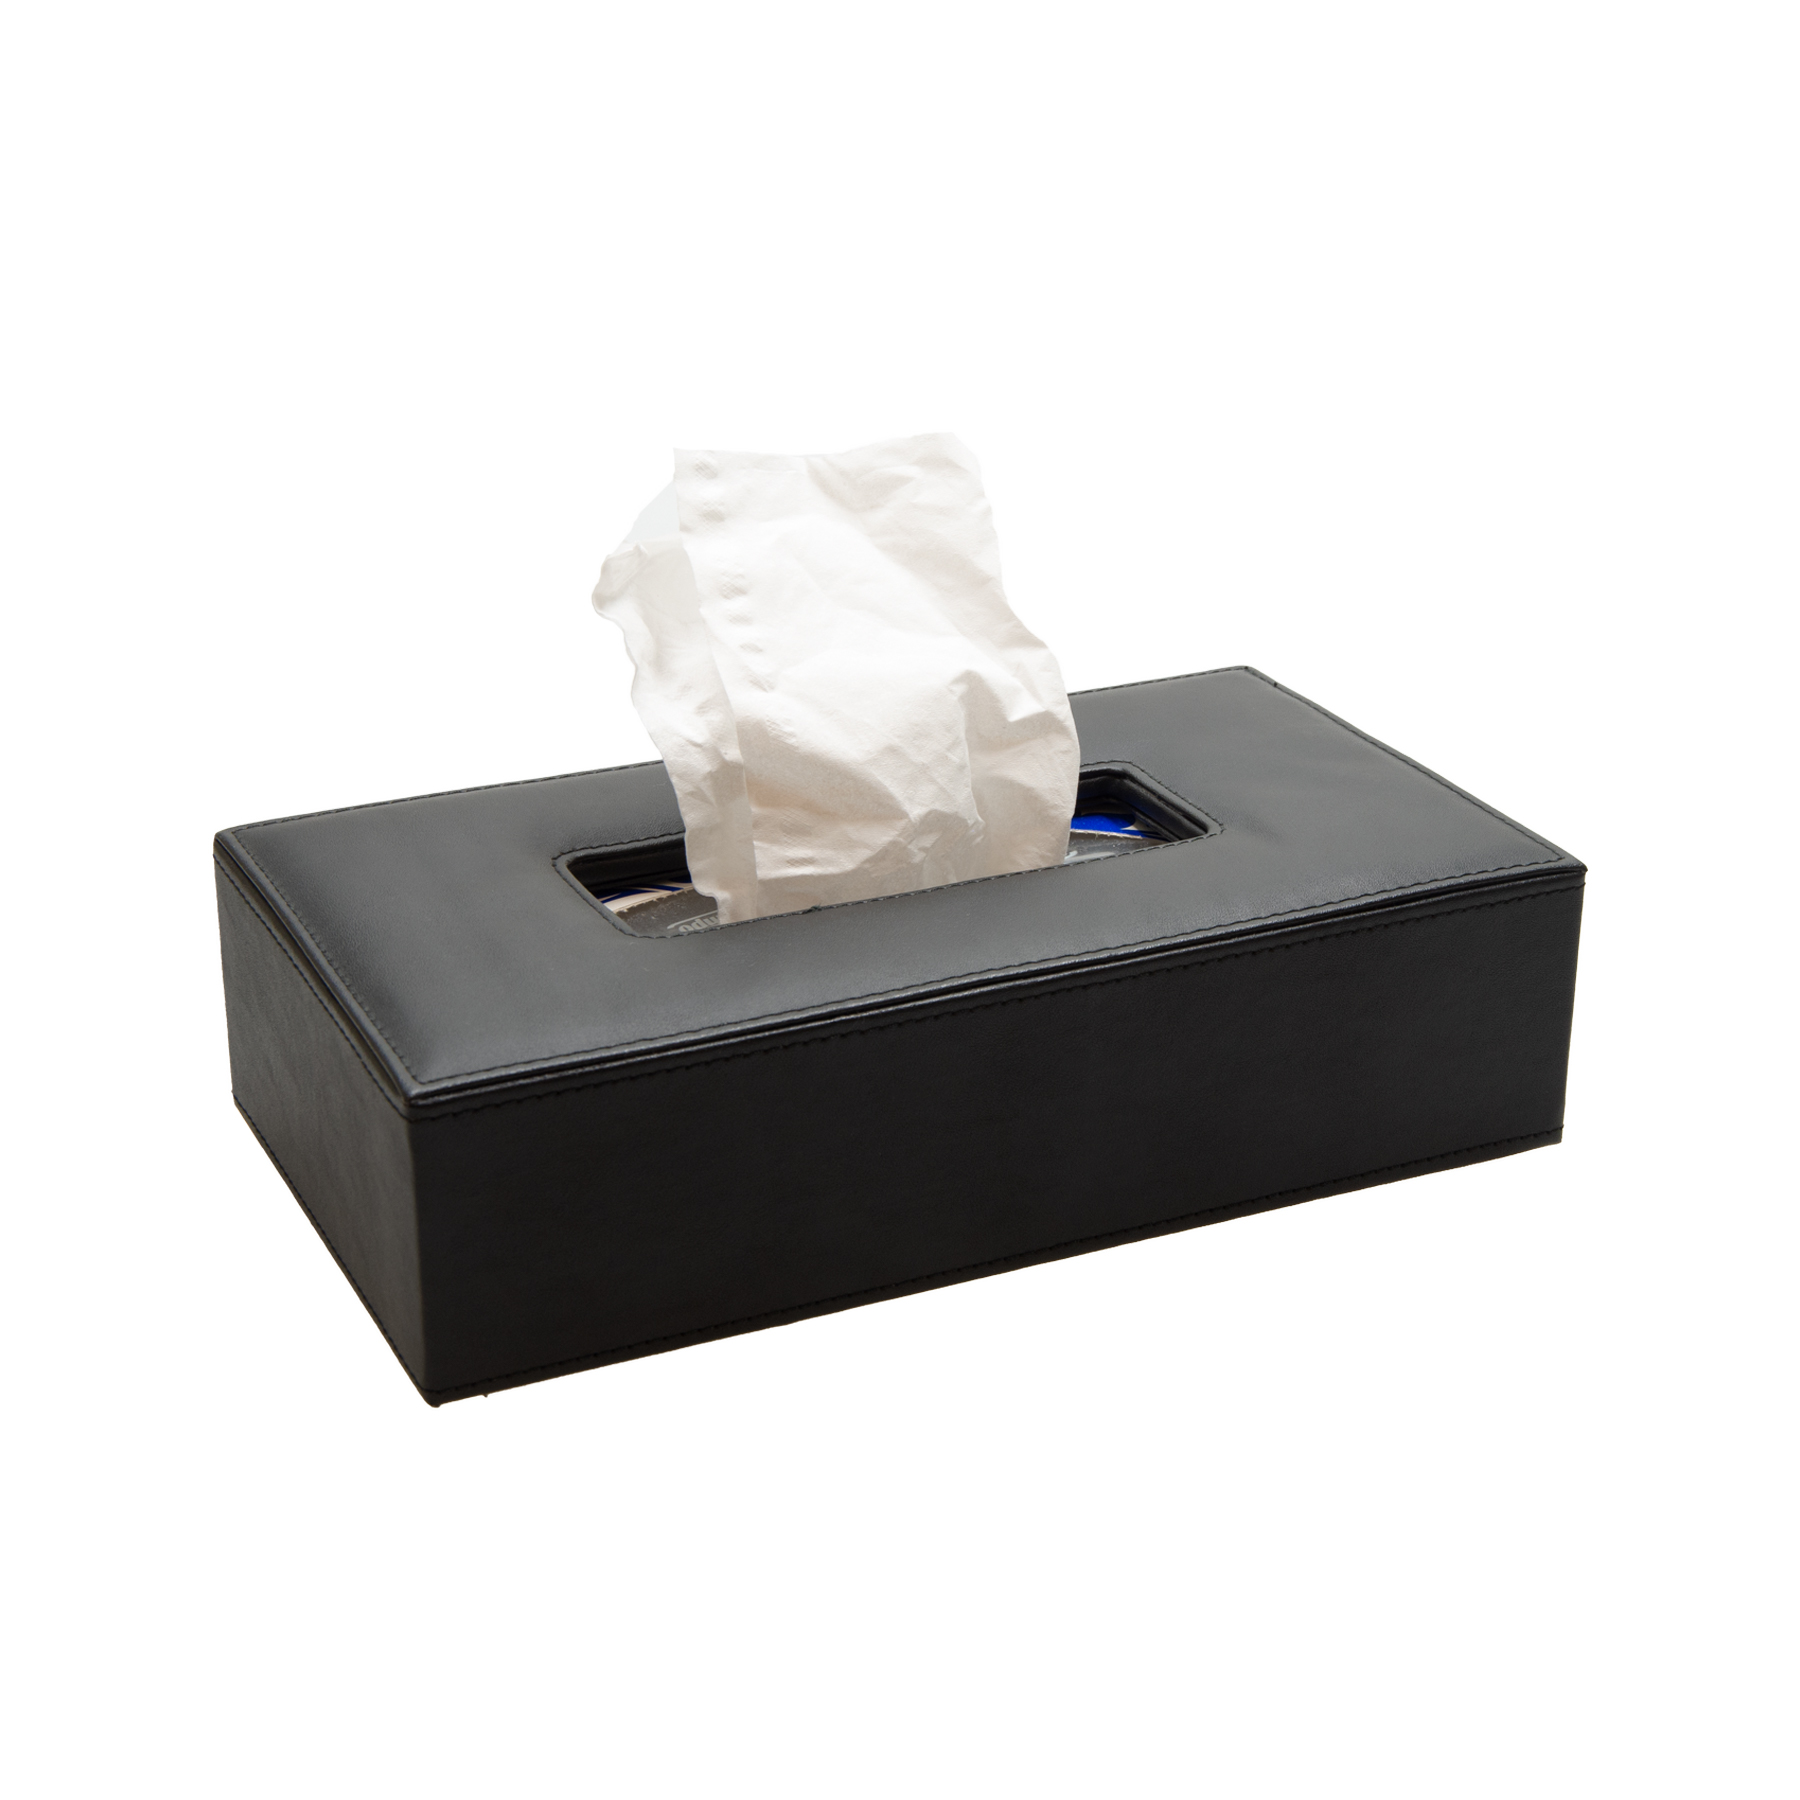 Badezimmerartikel Tissue Boxes Handkerchief Dispensers For Hotels Sfp